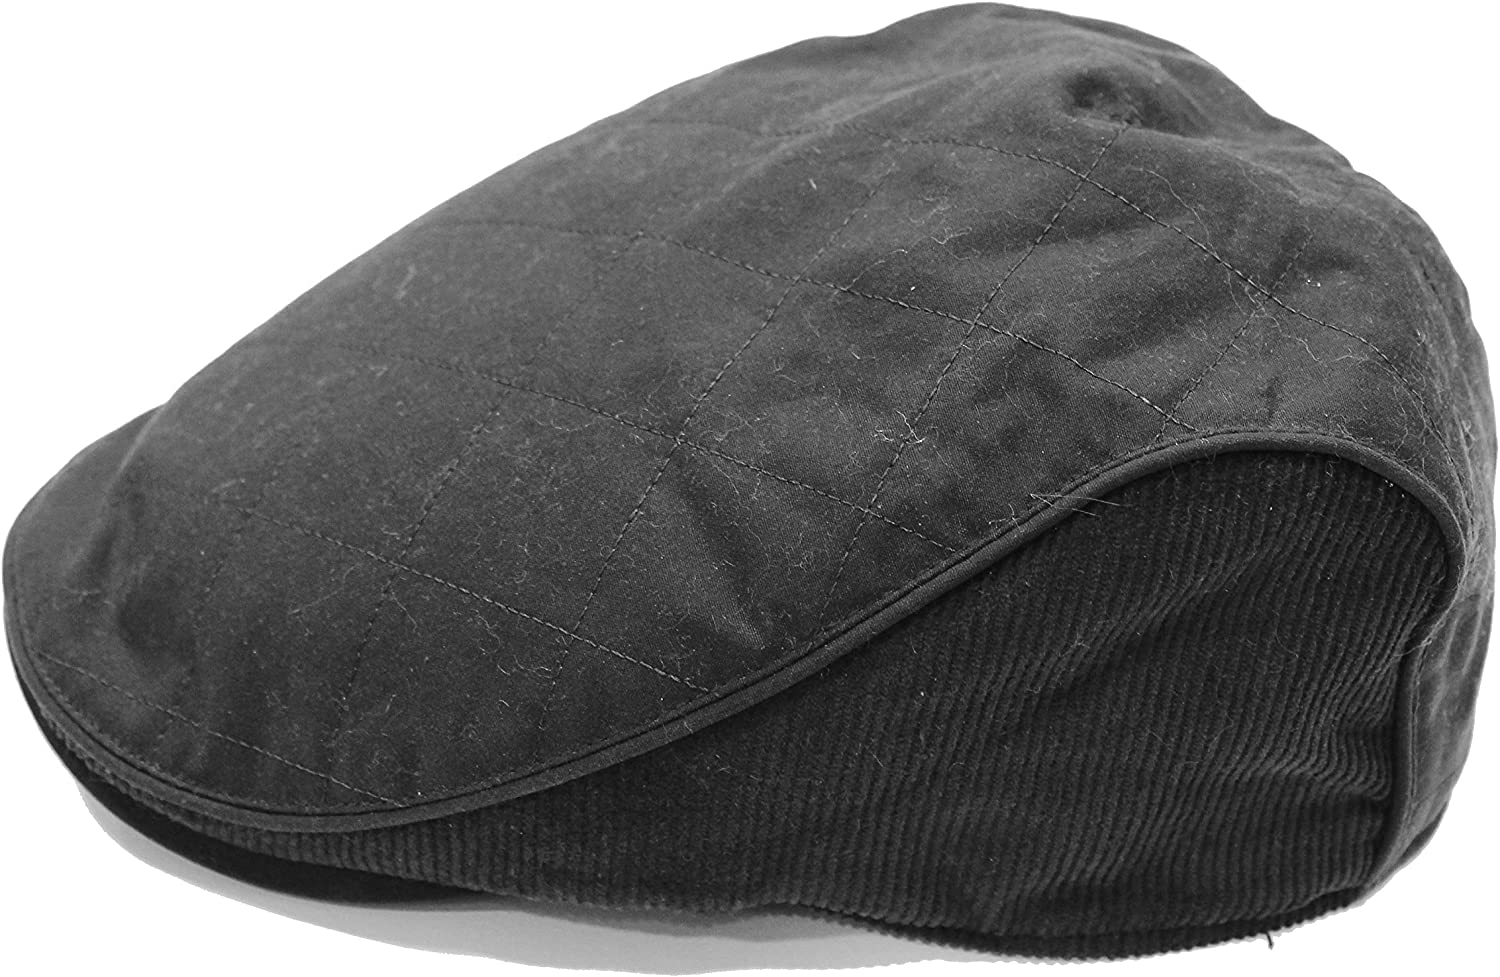 Heritage Traditions Classic Wax Cord Flat Cap Hat